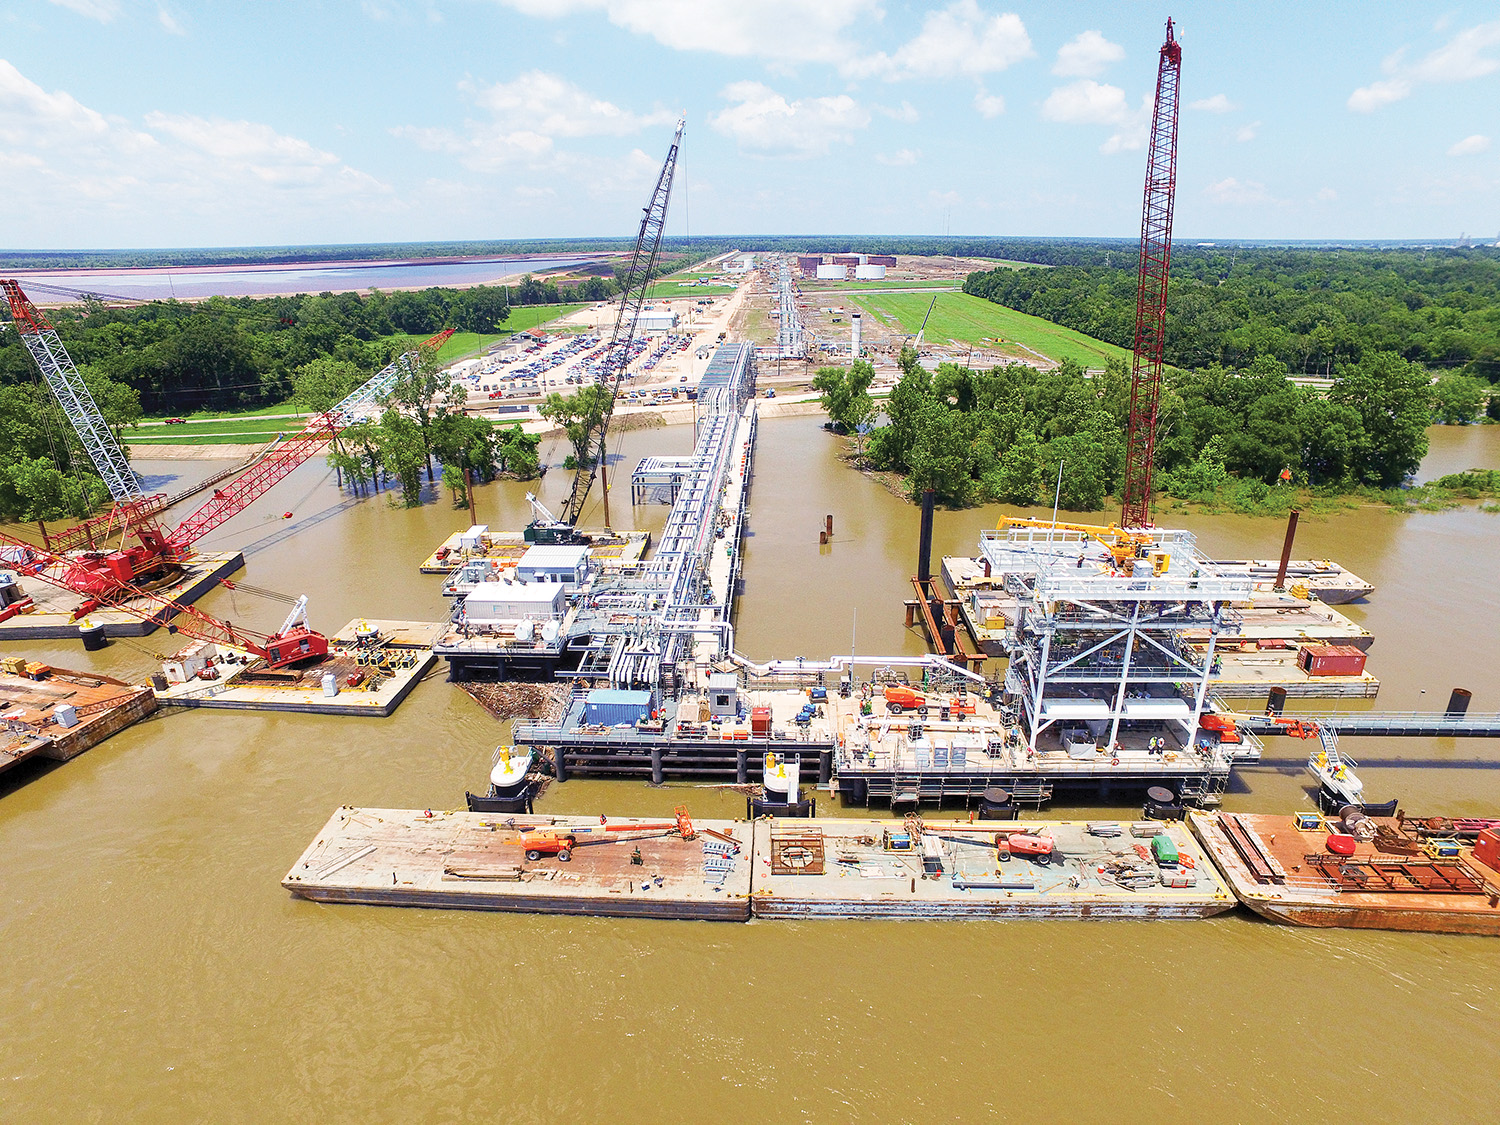 Massman completed the construction of five over-the-river structures at Pin Oak Terminal's first dock in Mt. Airy, La. The 900-foot dock is capable of loading Suezmax vessels and has up to six barge berths at Mile 144.1 on the Lower Mississippi River. (Photo courtesy of Massman Construction Company)